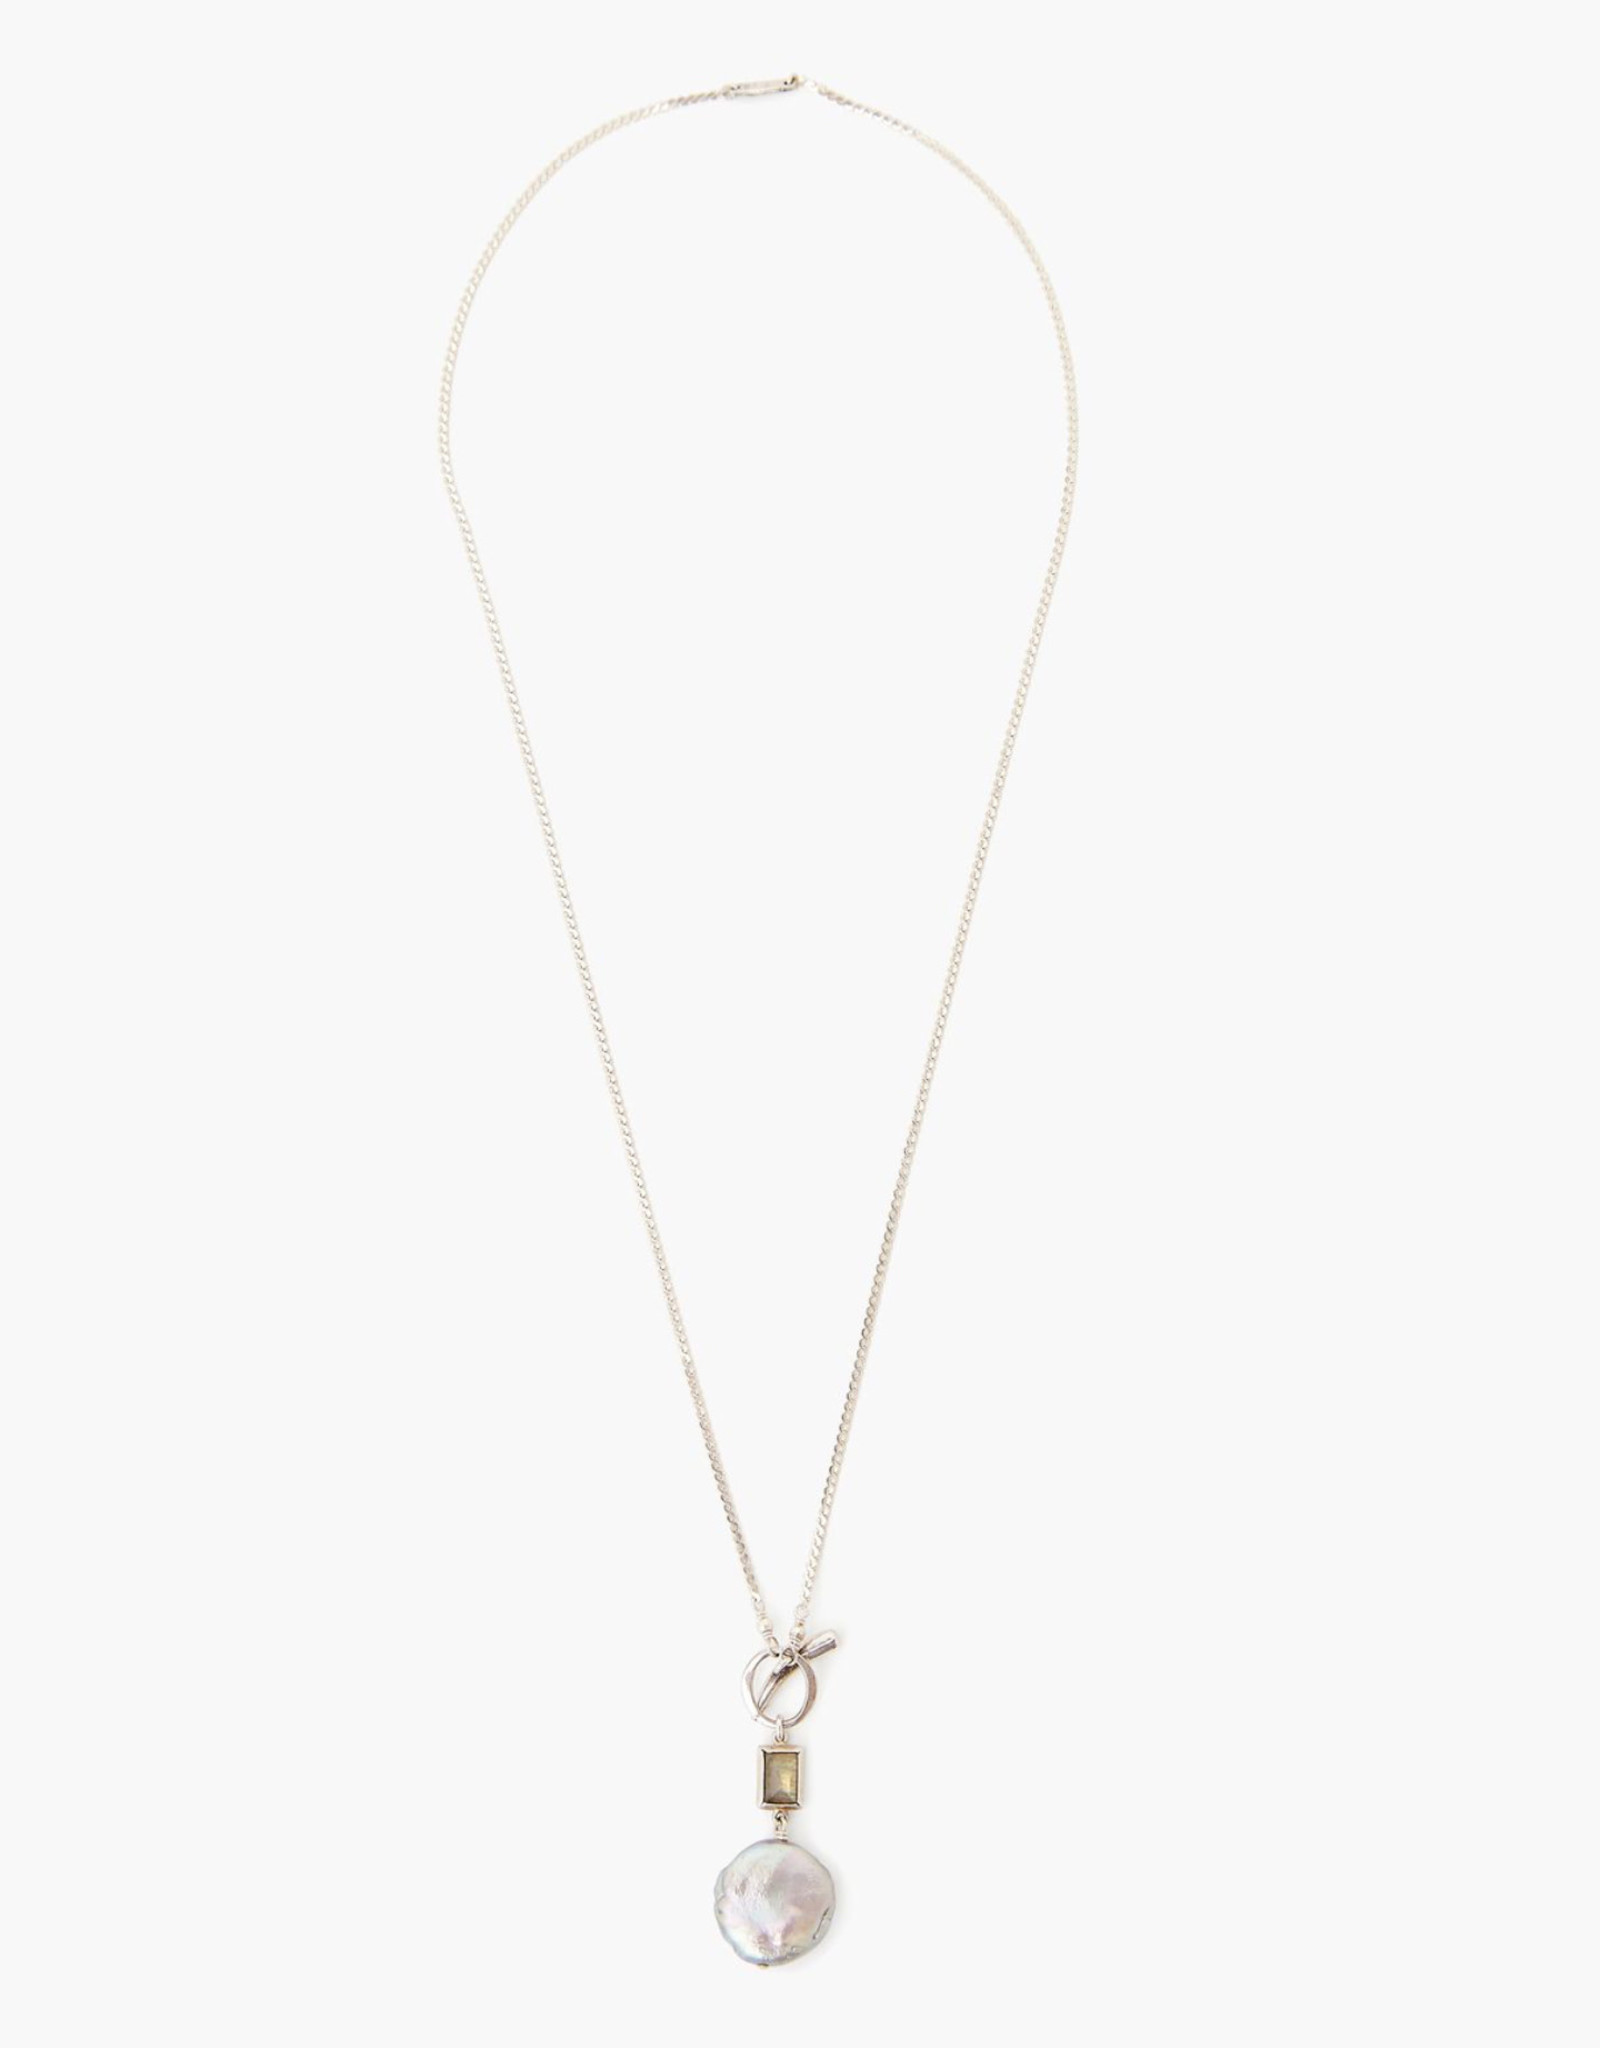 Chan Luu Pearl Pendant with Labradorite Accent Necklace